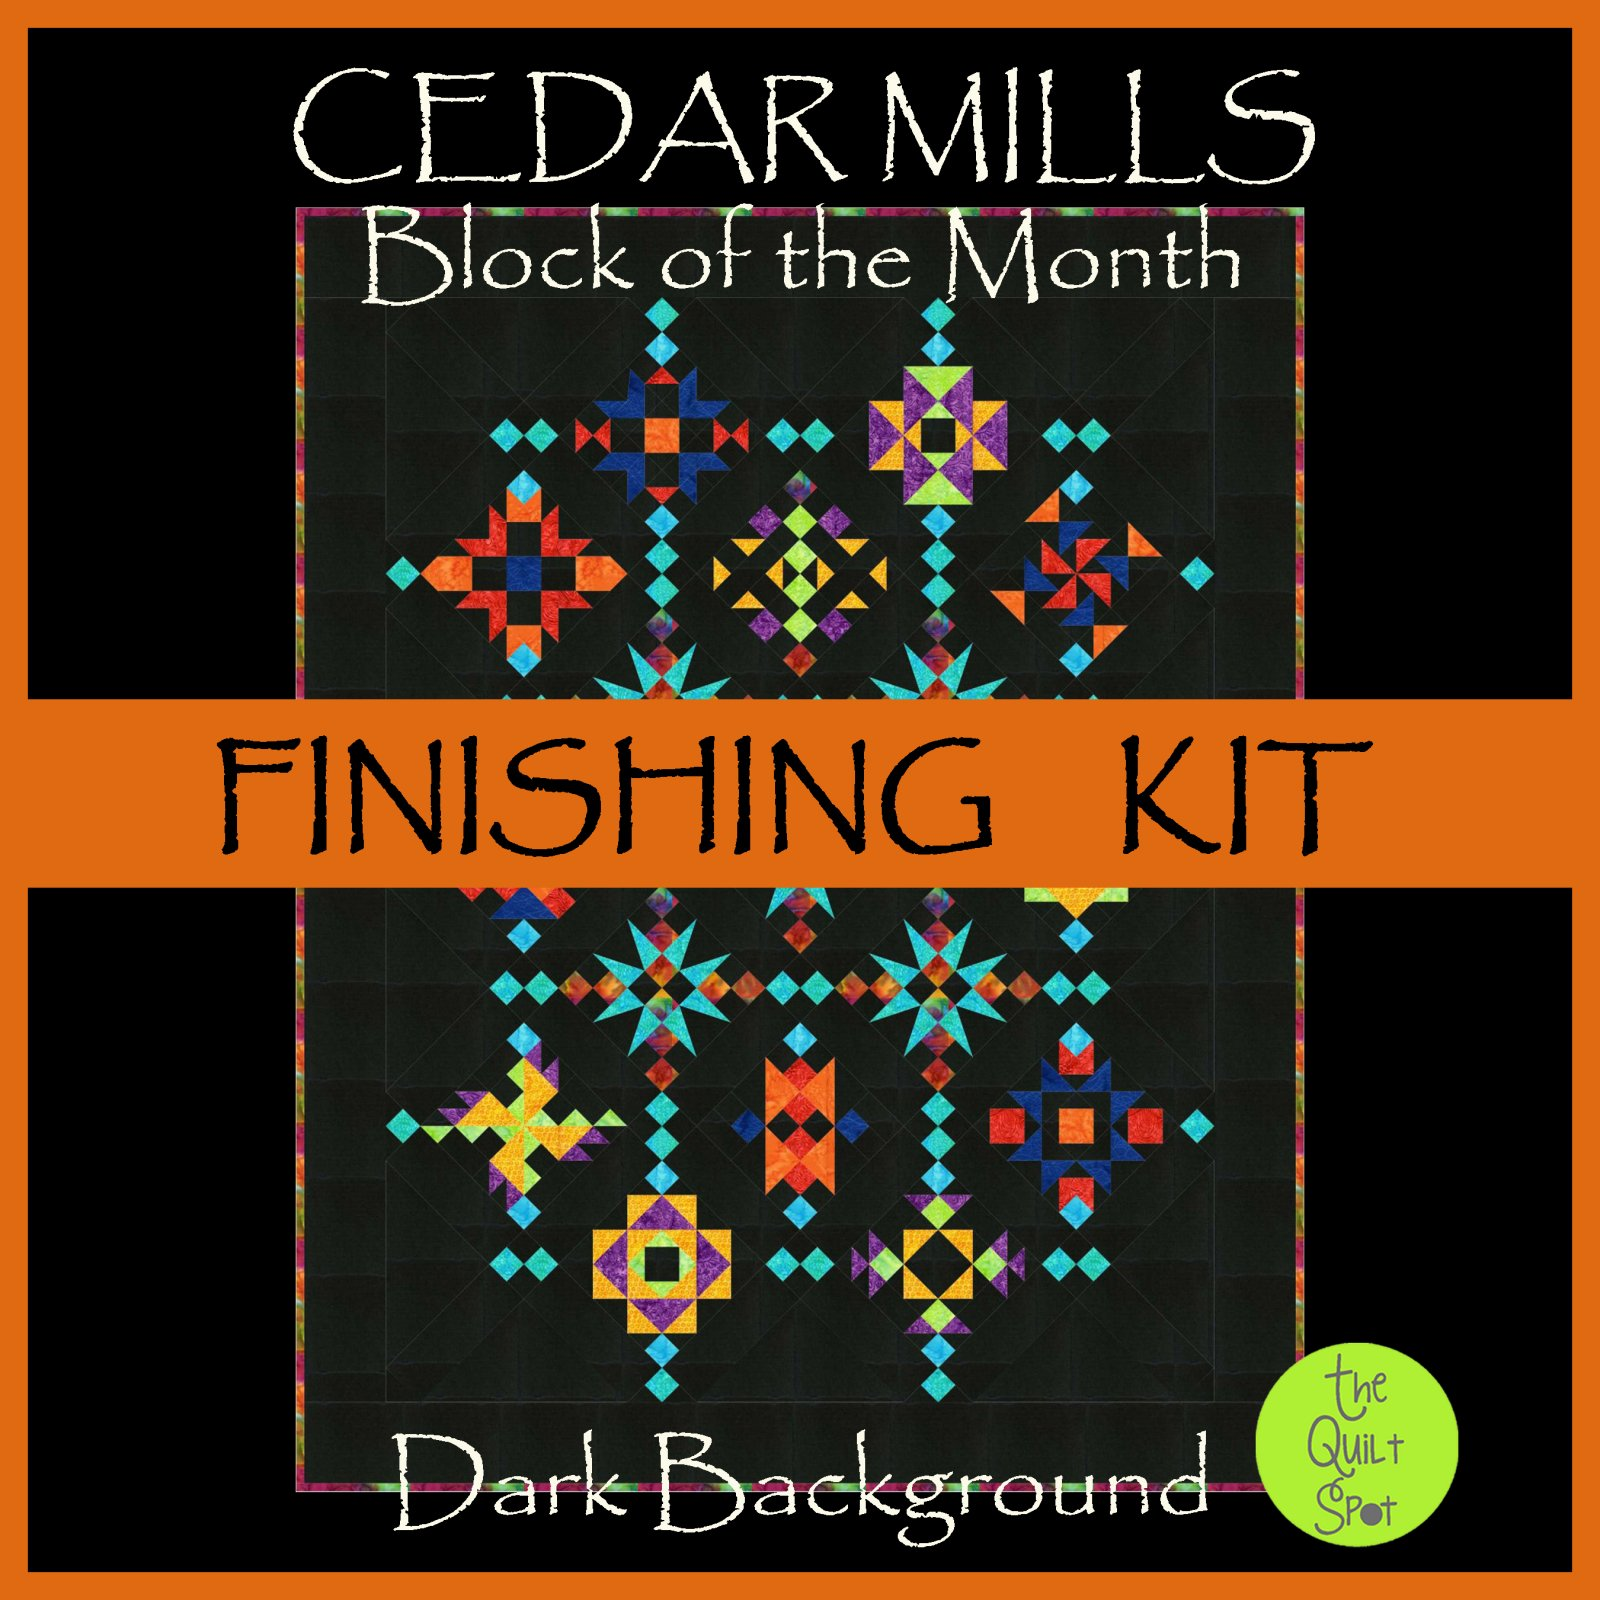 Cedar Mills Finishing Kit DARK